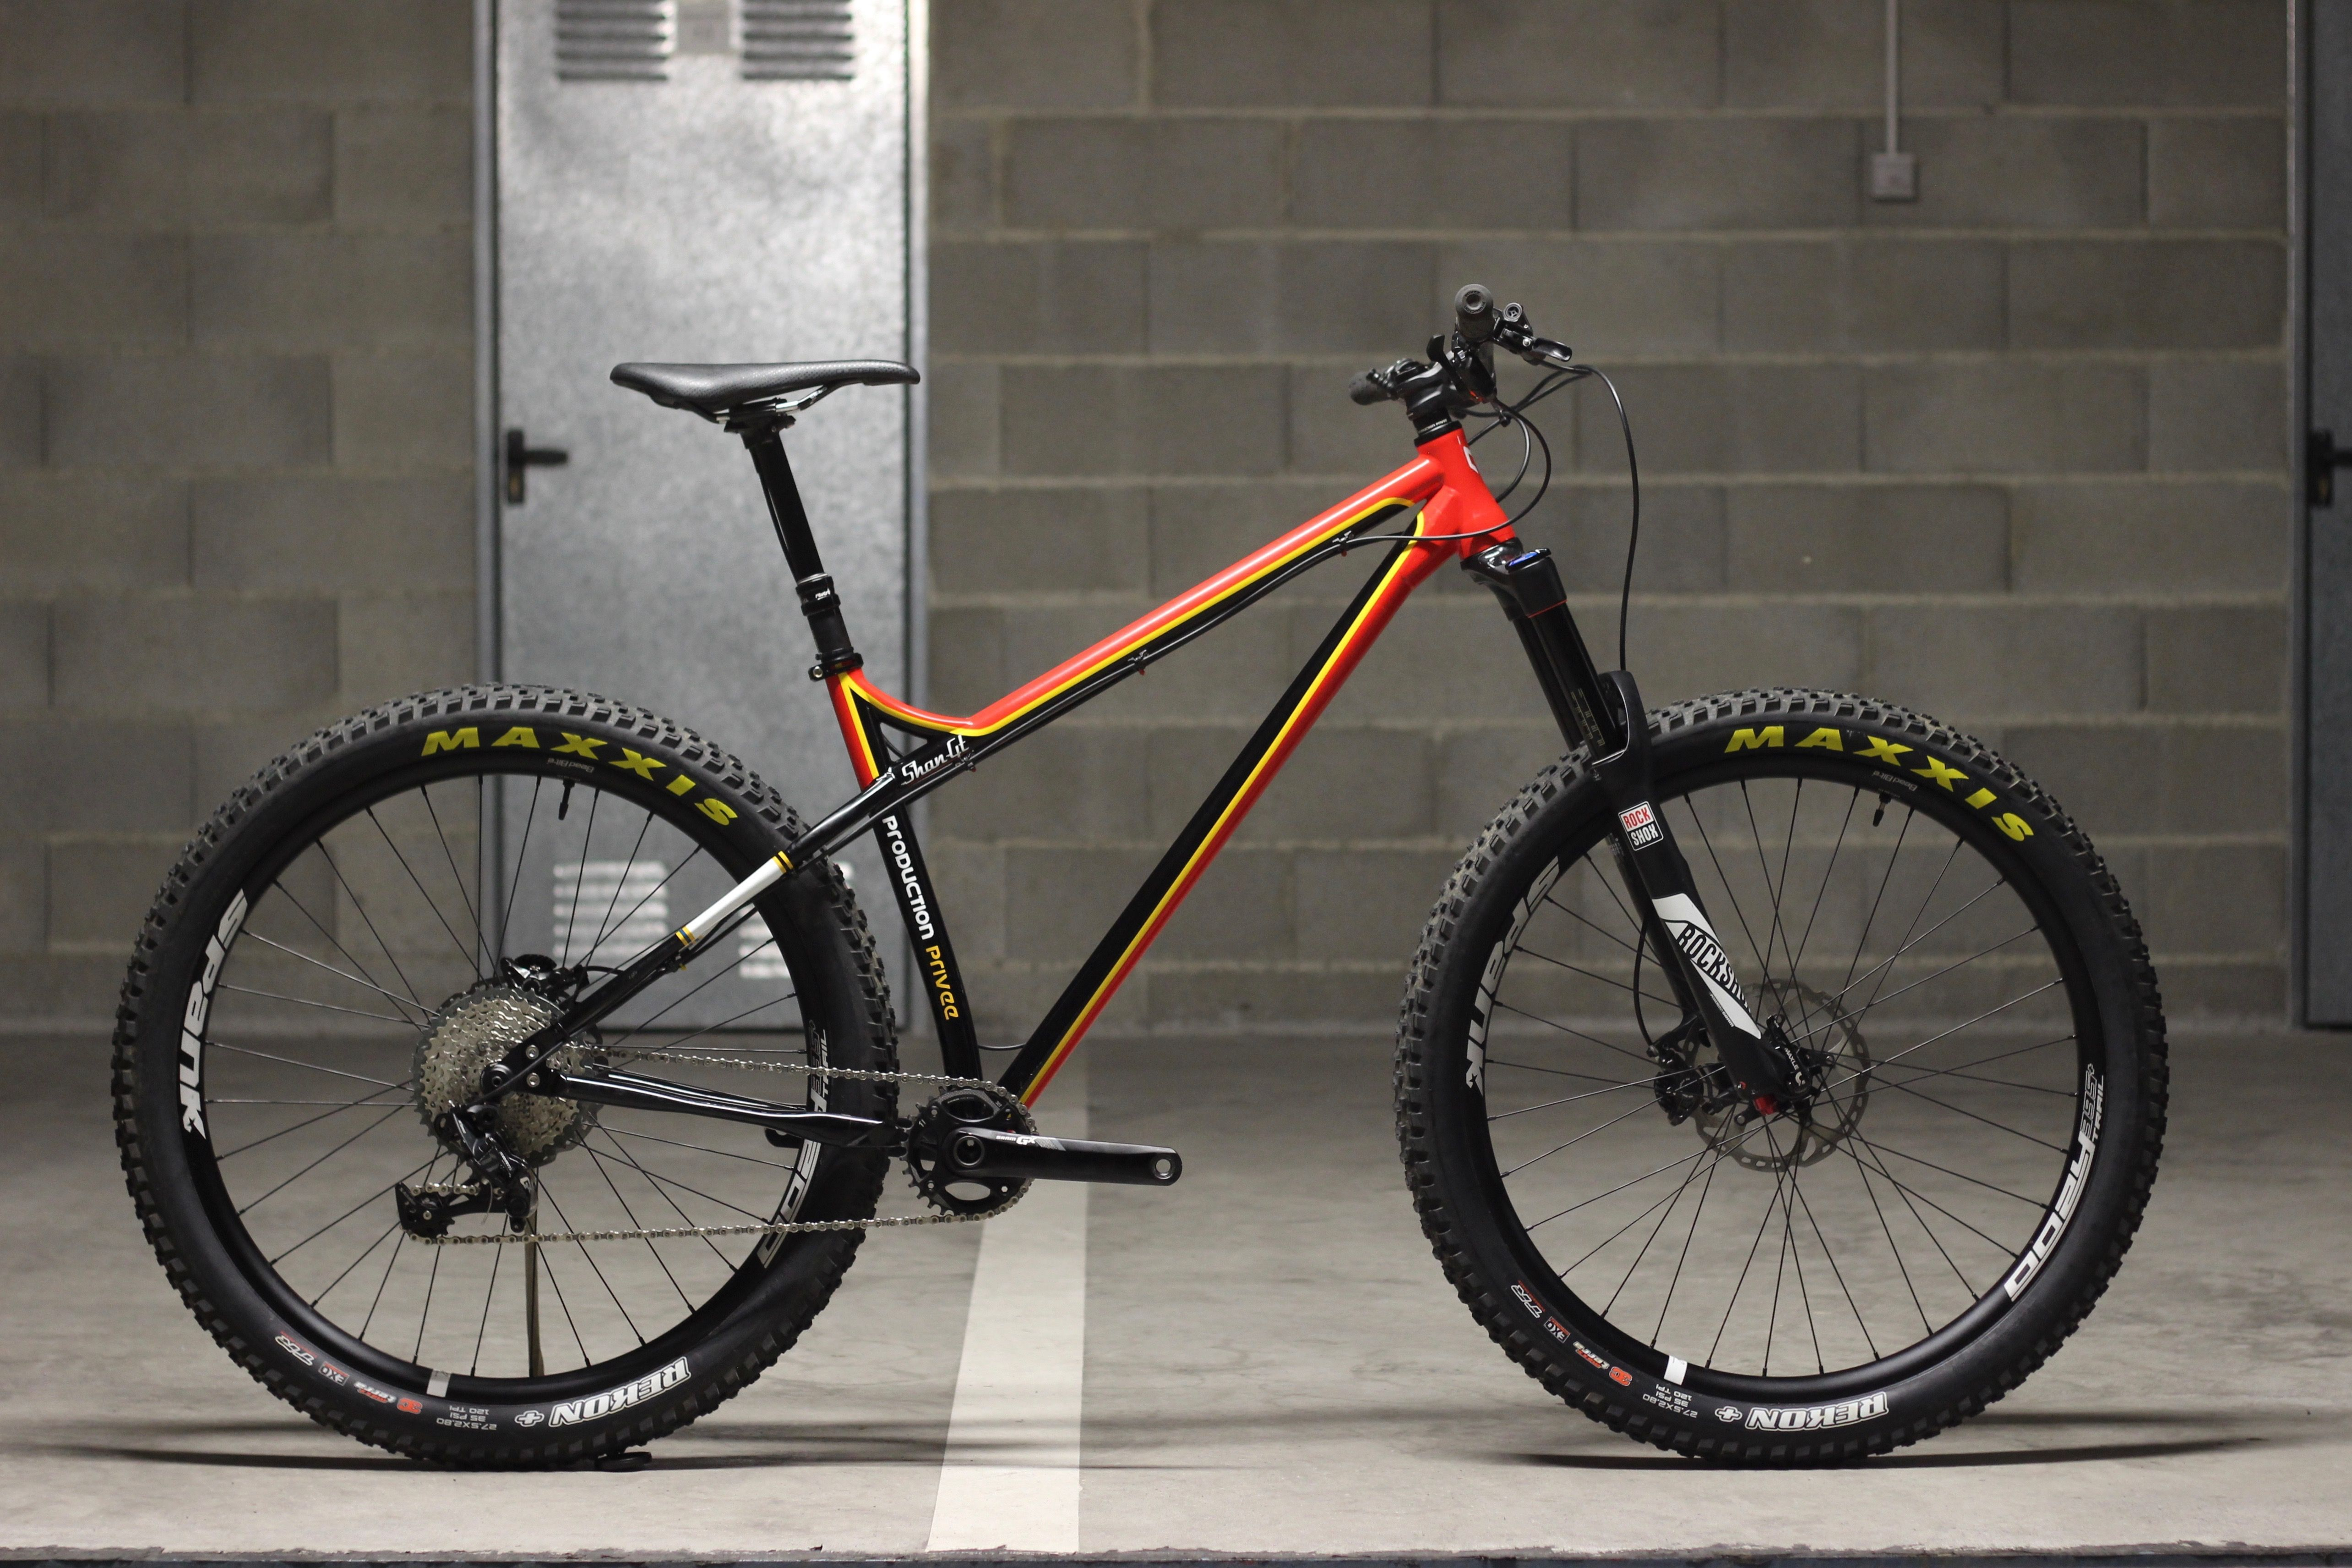 The Sexiest AM/FR/Enduro Hardtail Thread (Please read the ...